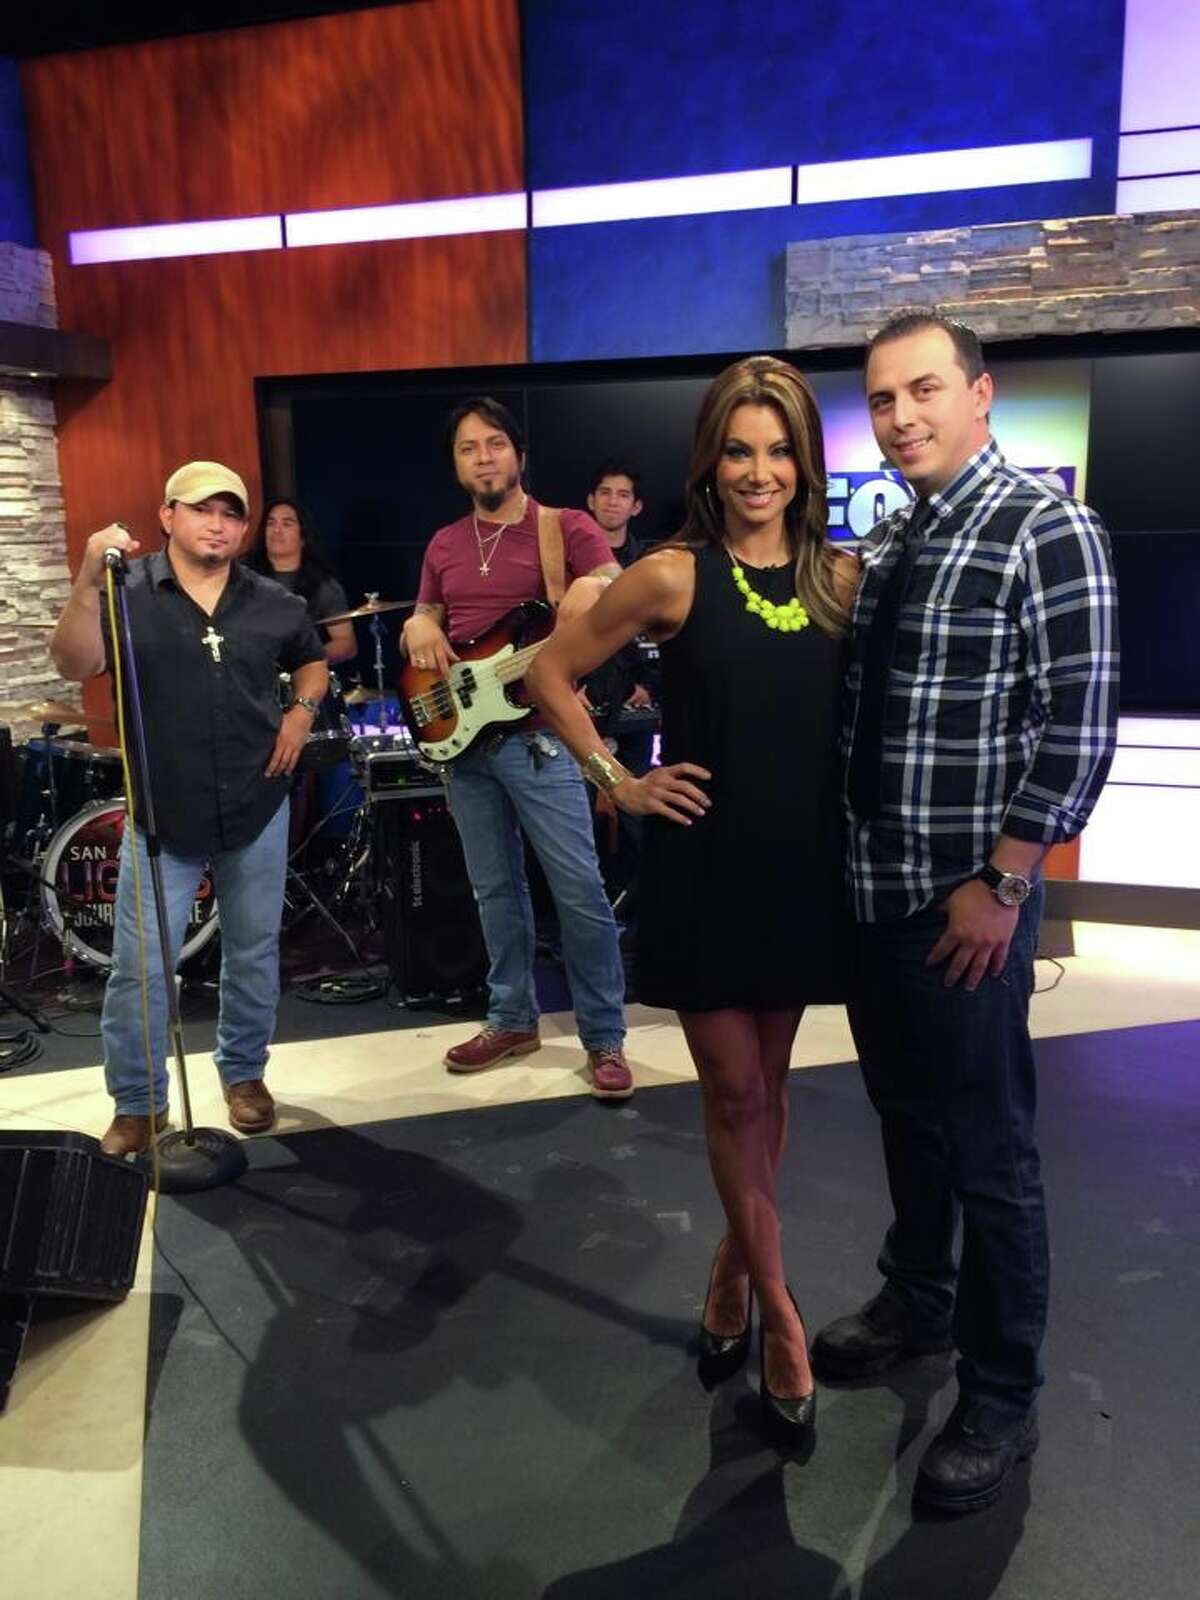 """KABB's """"Daytime with Kimberly and Esteban"""" have both drawn the interest of John Oliver on his weekly HBO show."""